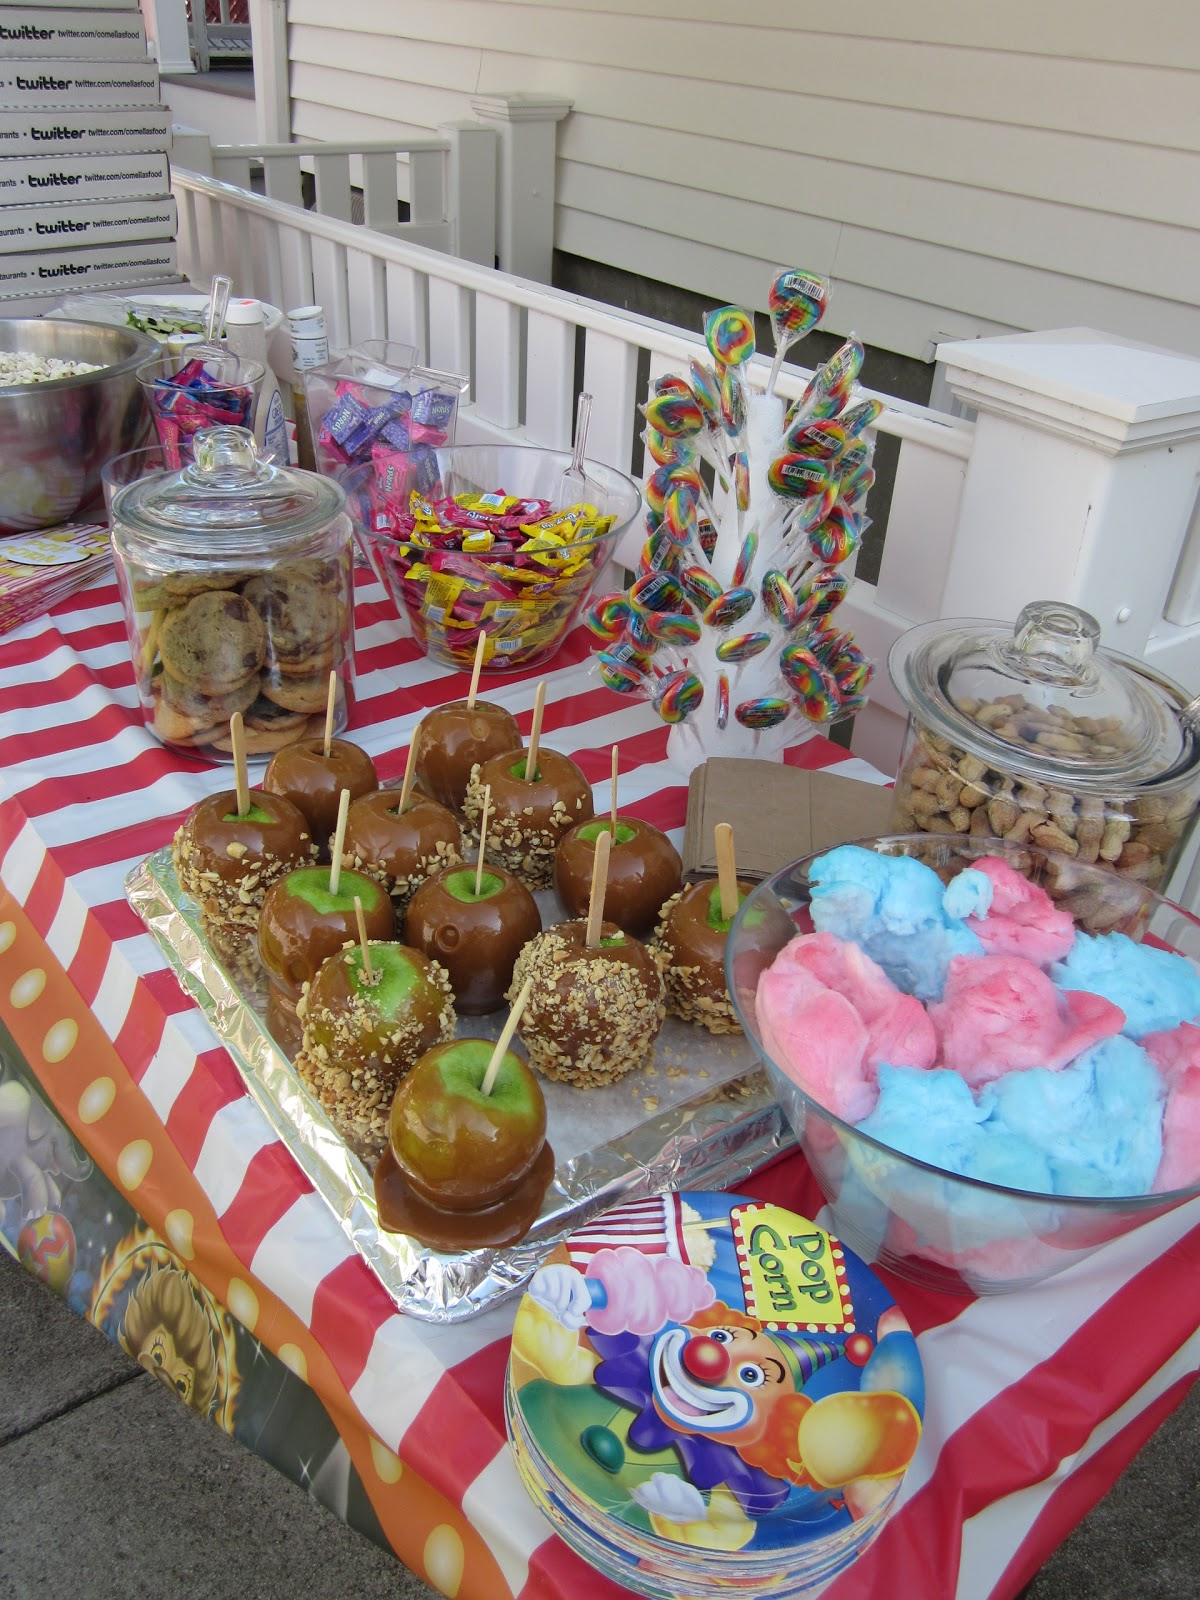 Food fashionista perfect day for a 1 year old birthday party for 1 year birthday decorations